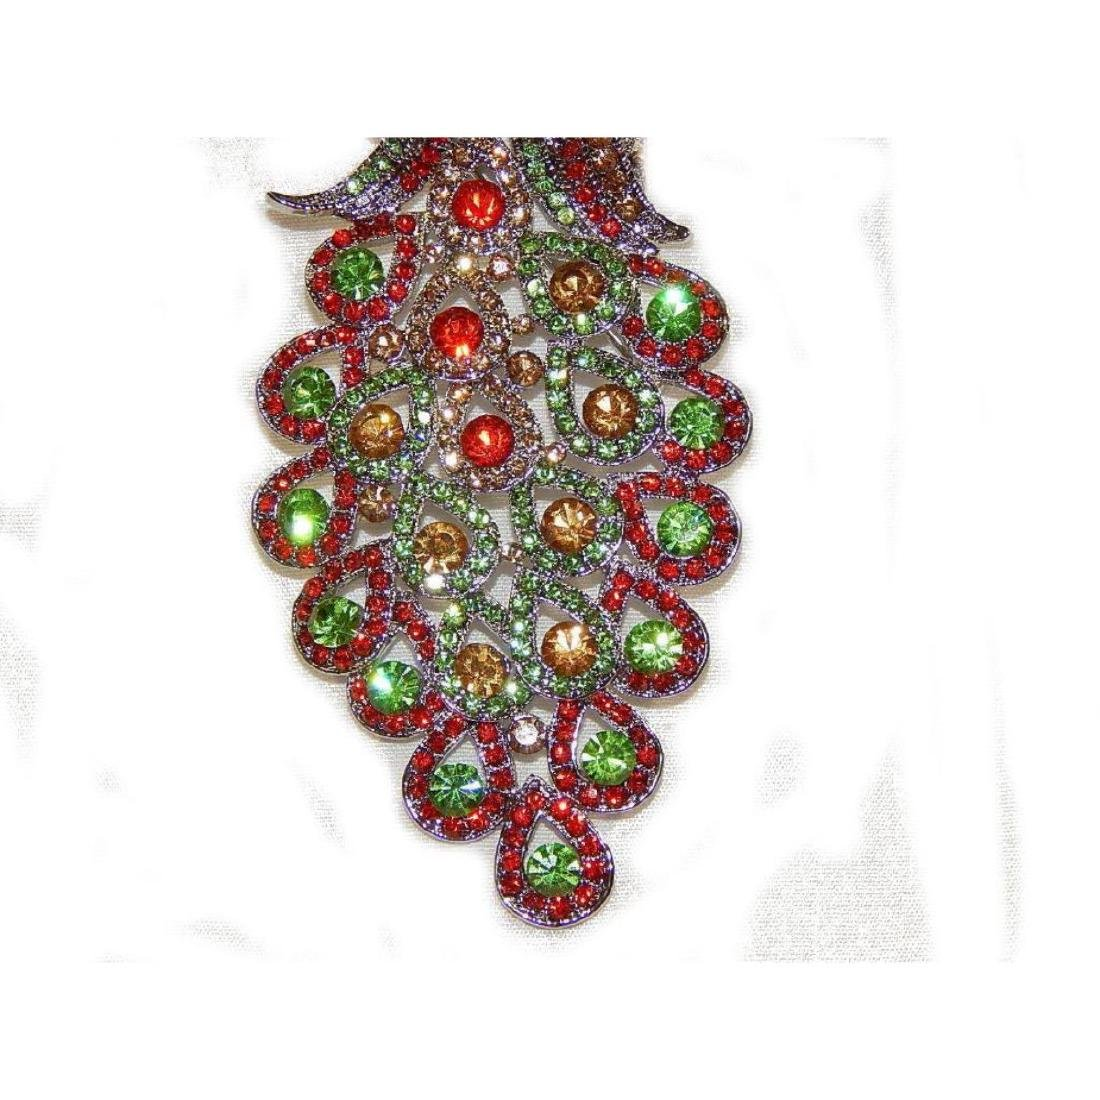 "5.3"" Peacock Multicolor Rhinestone Crystal Brooch /pin - 5"